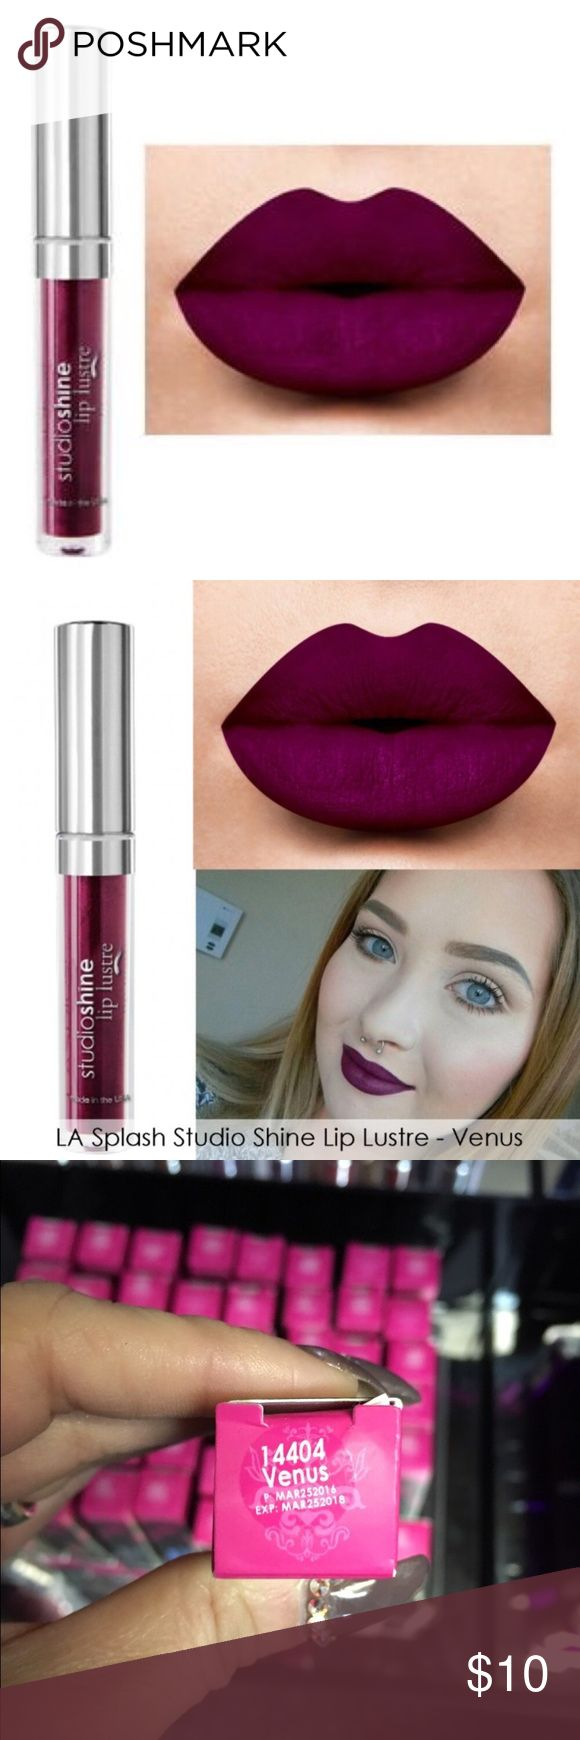 New LA Splash Studio Shine Liquid Matte Lipstick Fairy tales do come true with LA SPLASH fairy dusted waterproof StudioShine Lip Lustre. Specially formulated with the highest quality pigments & pearls. To activate pearls, gently run finger across lips. Guaranteed authentic and new LA SPLASH Makeup Lipstick